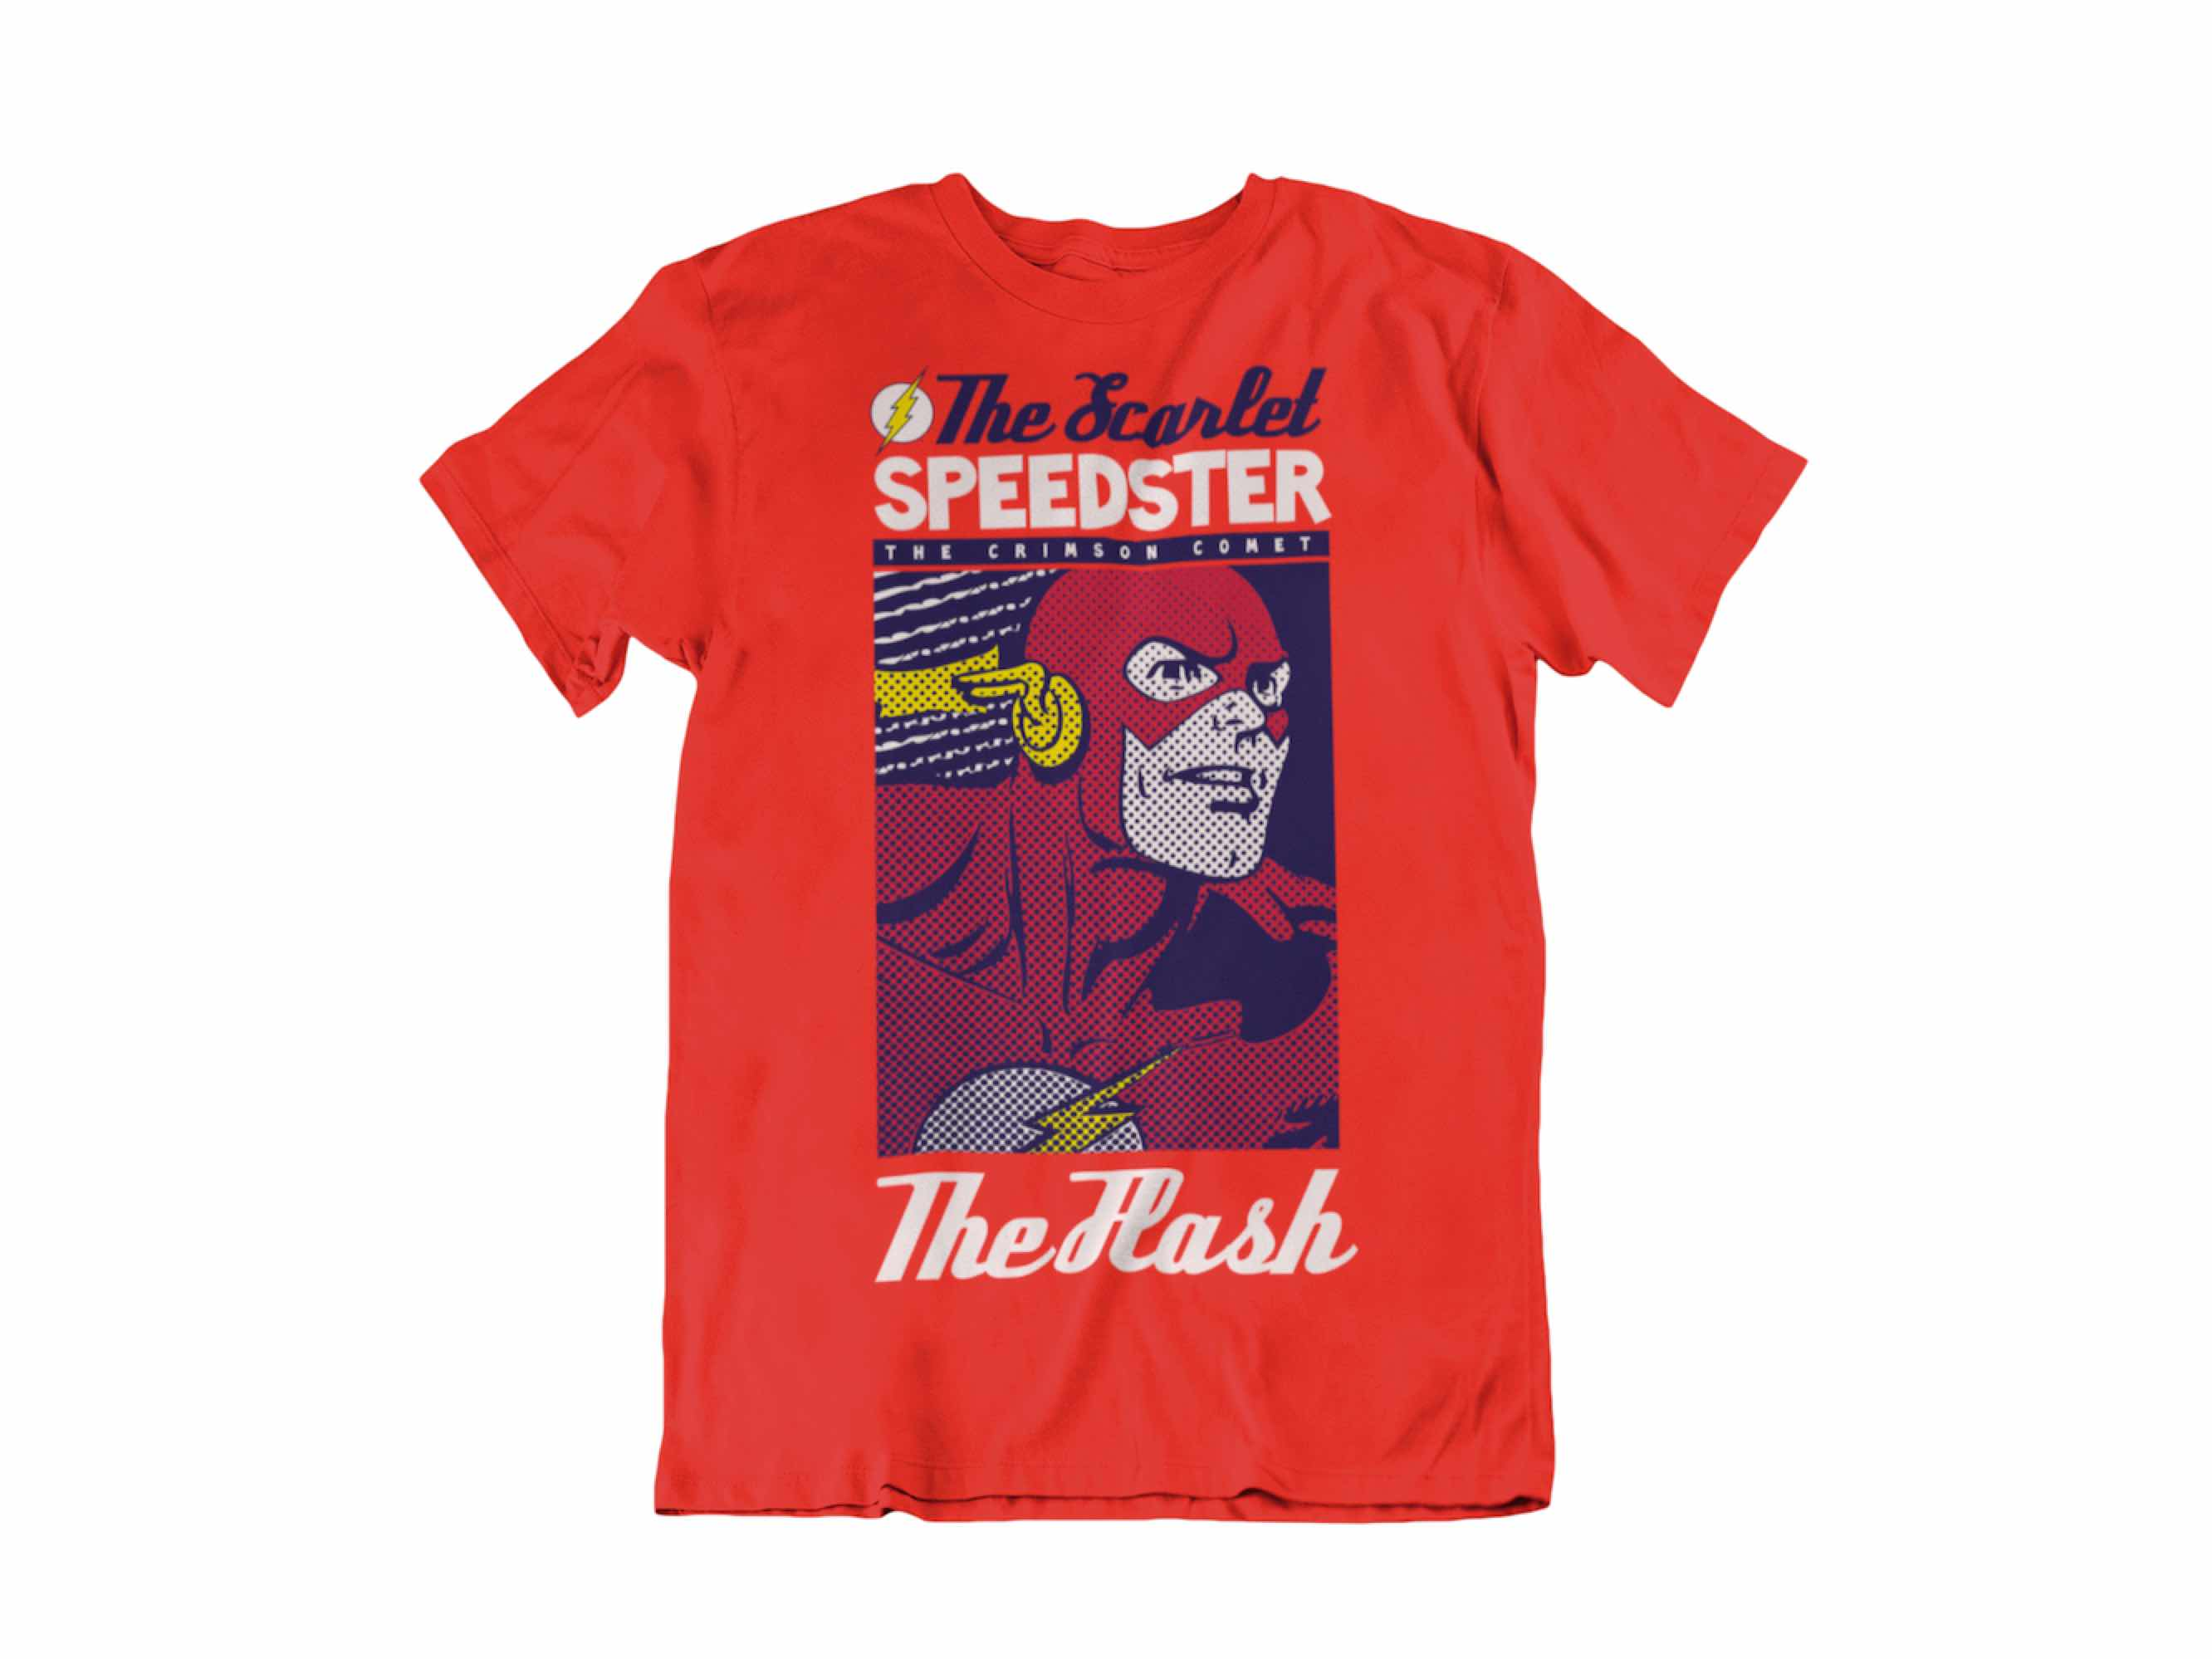 CAMISETA THE FLASH THE SCARLET SPEEDSTER UNISEX TALLA L